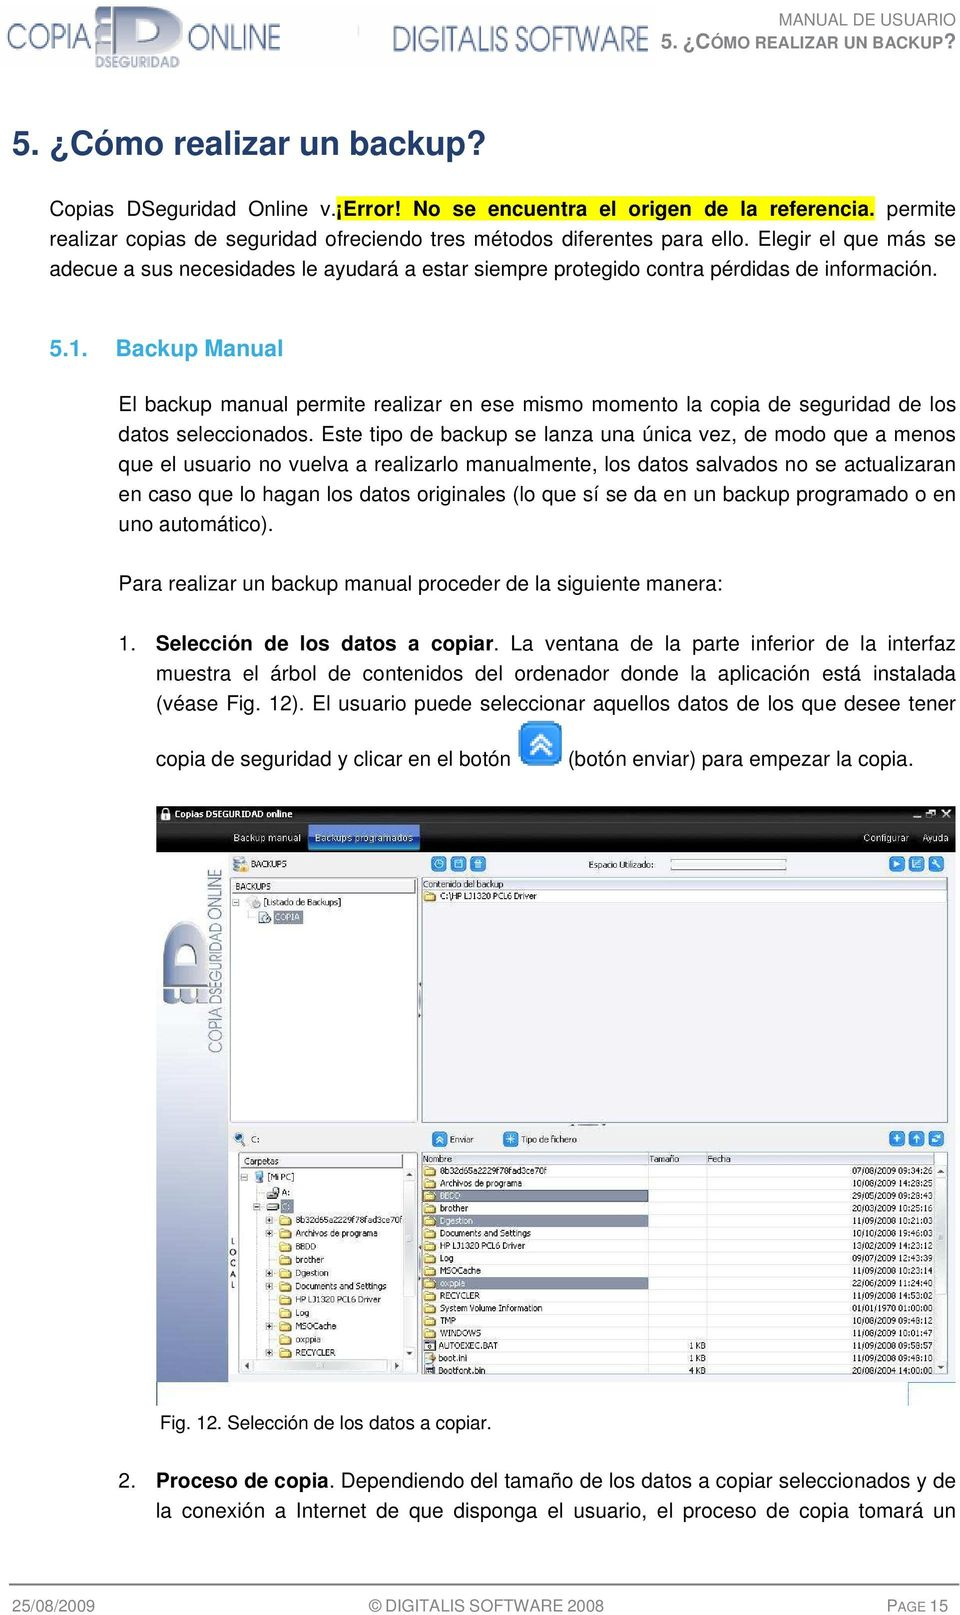 1. Backup Manual El backup manual permite realizar en ese mismo momento la copia de seguridad de los datos seleccionados.